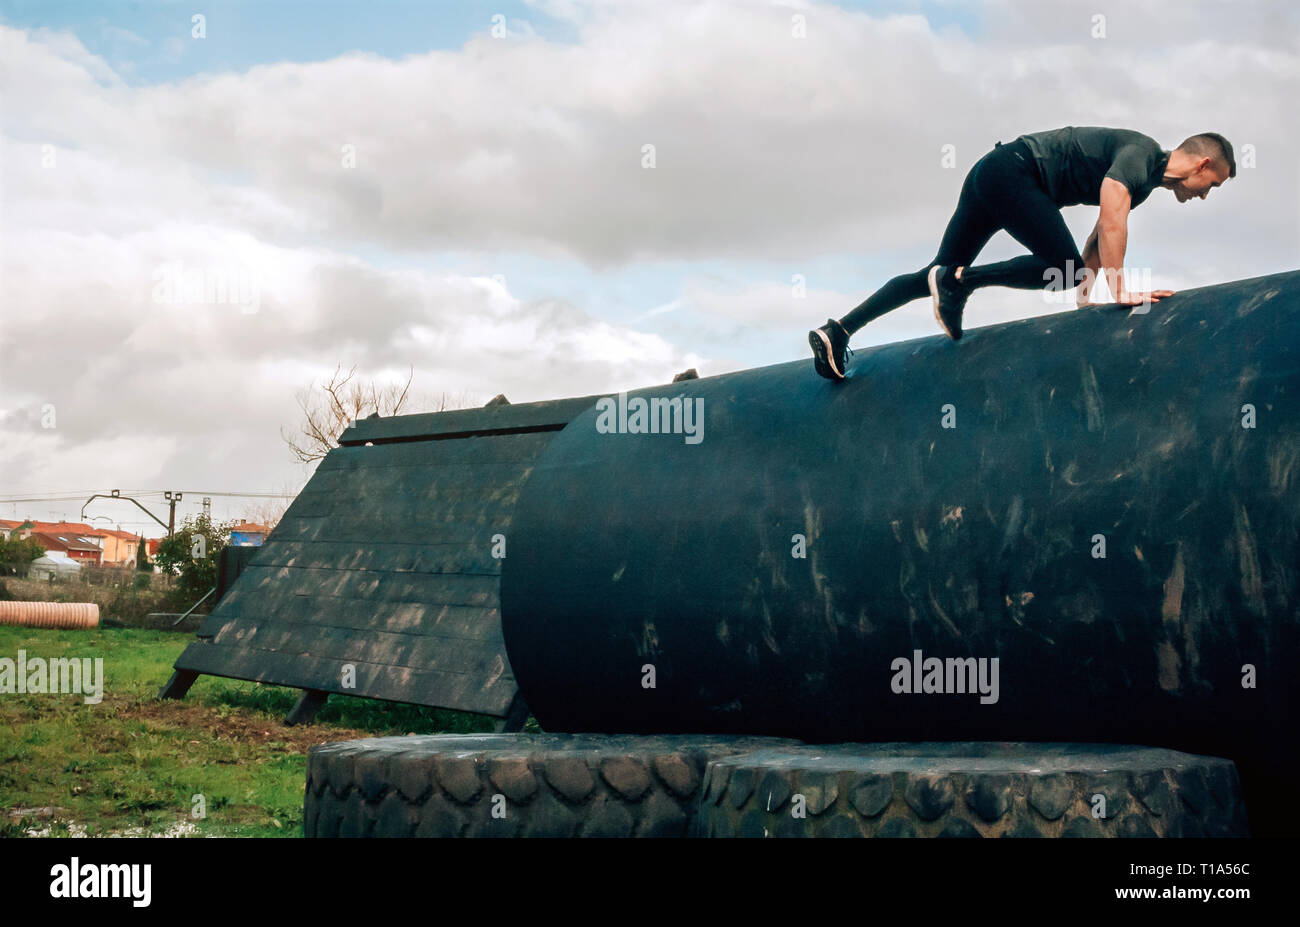 Man in an obstacle course climbing a drum - Stock Image